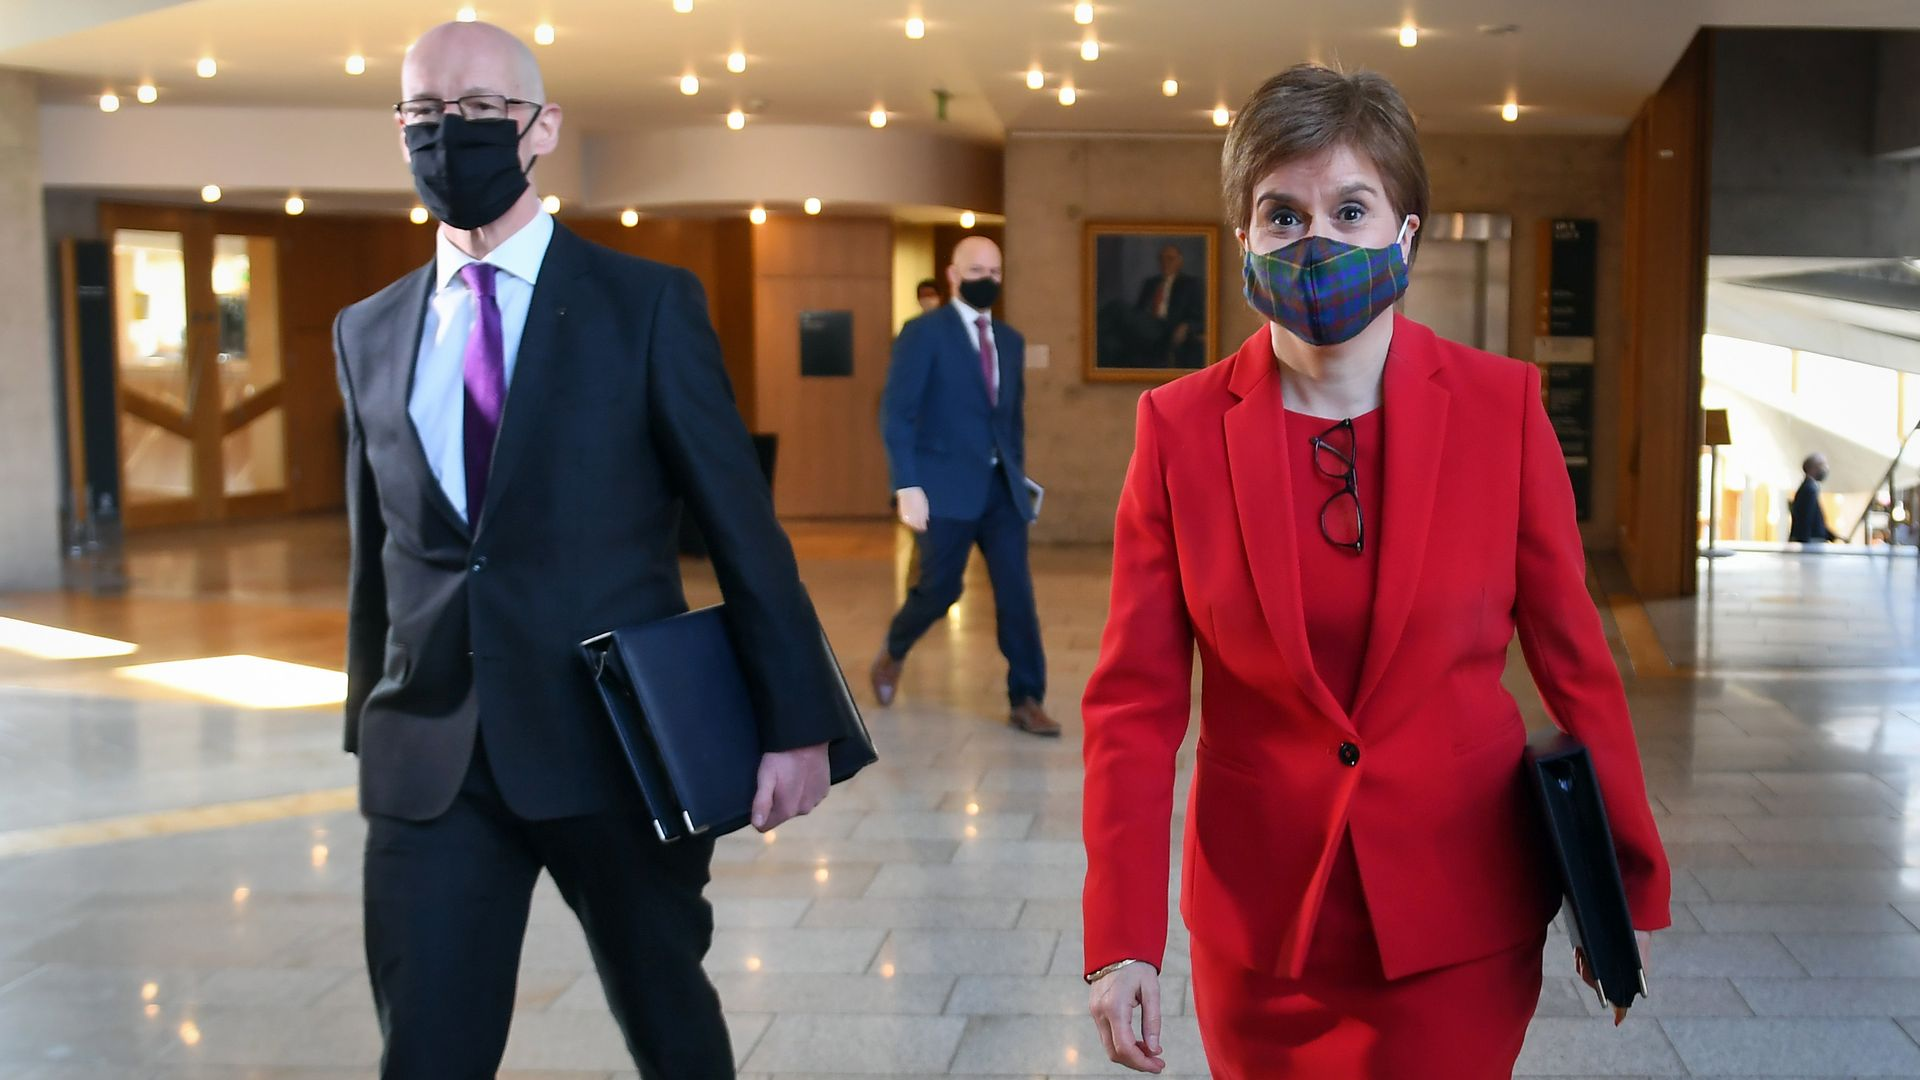 Scotland's deputy first minister, John Swinney, (L) arriving for First Minister's Questions at the Scottish parliament in Holyrood with first minister Nicola Sturgeon. Swinney declared the SNP was on course to win a 'historic' fourth term in government - Credit: PA